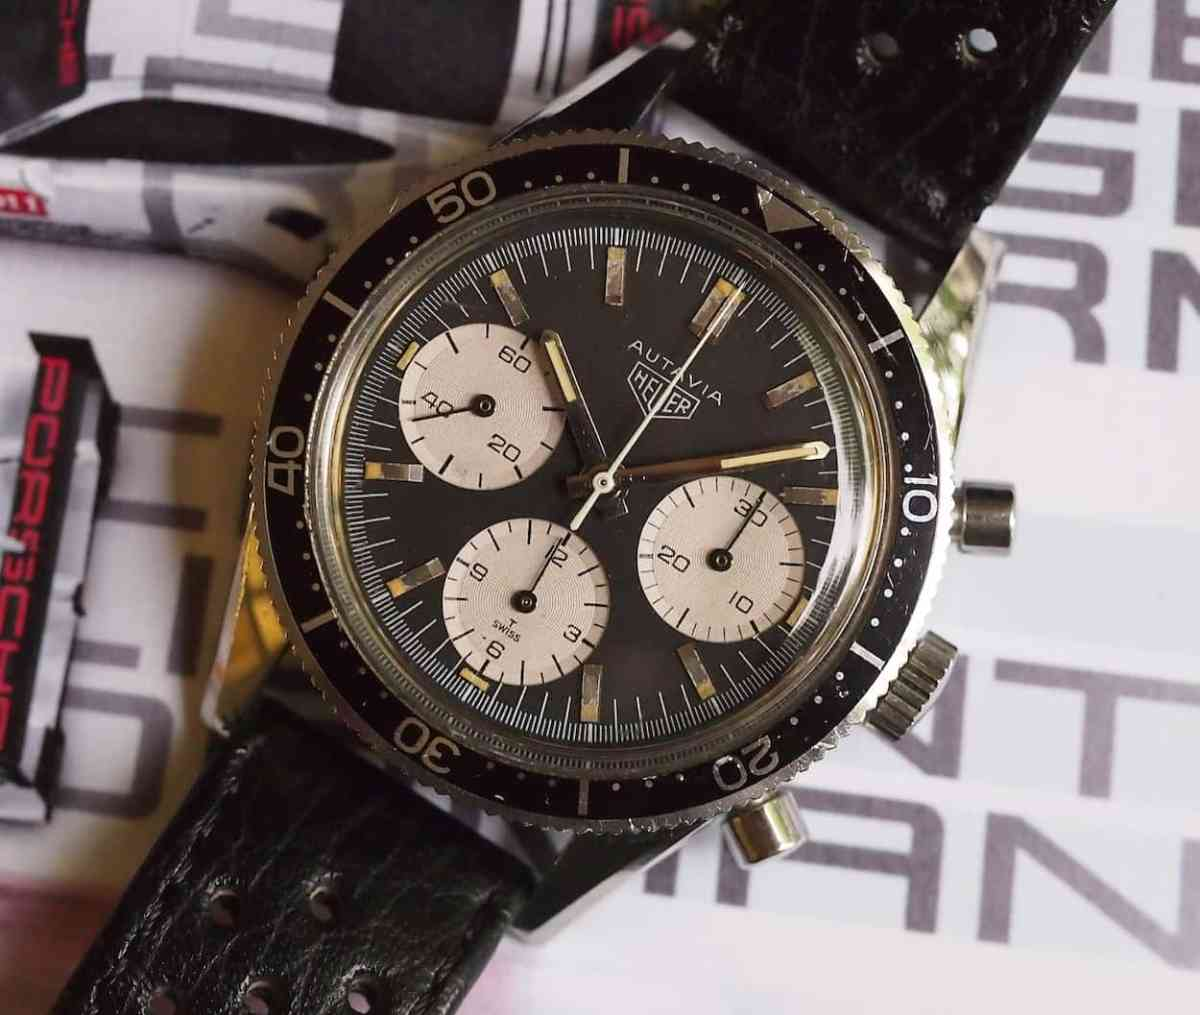 Heuer Autavia 2446 is a stunner